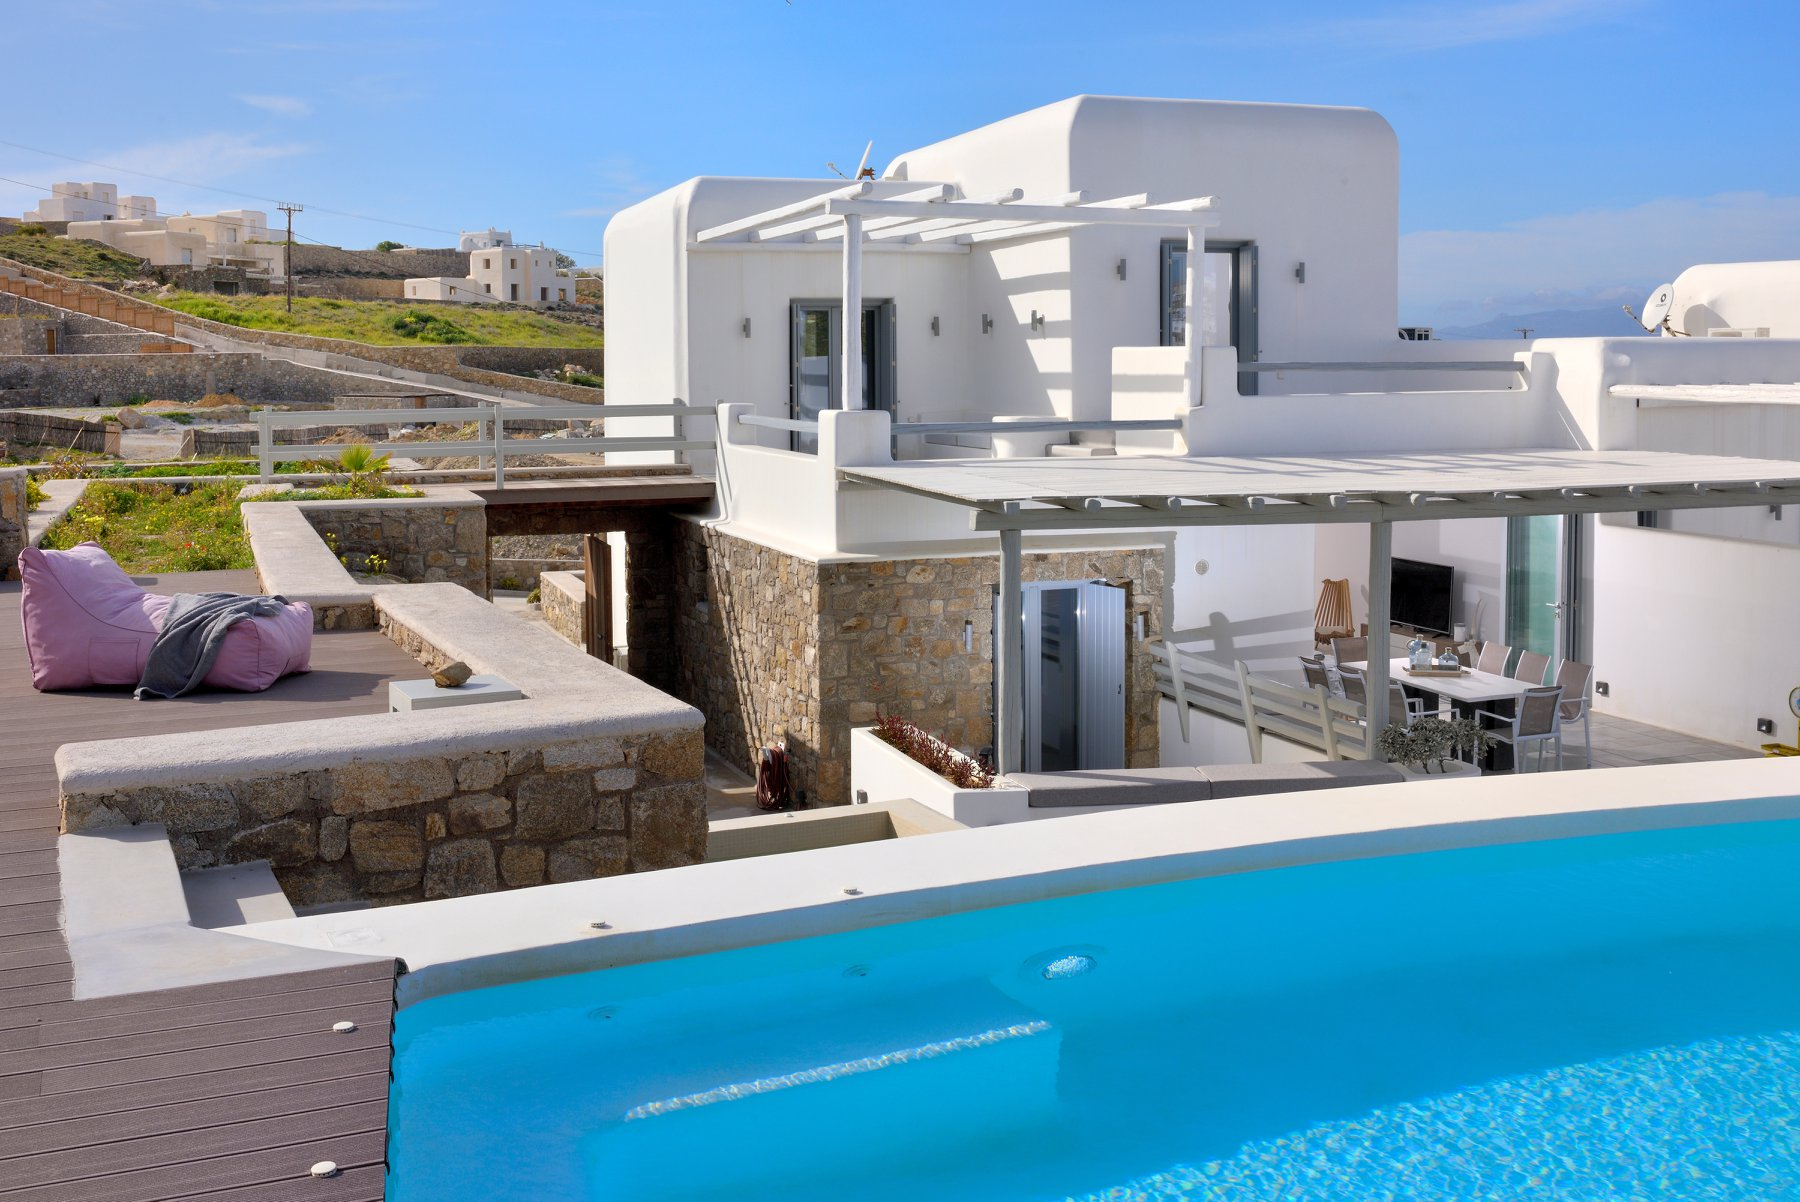 Chic 4 bedroom Hilltop villa with private pool